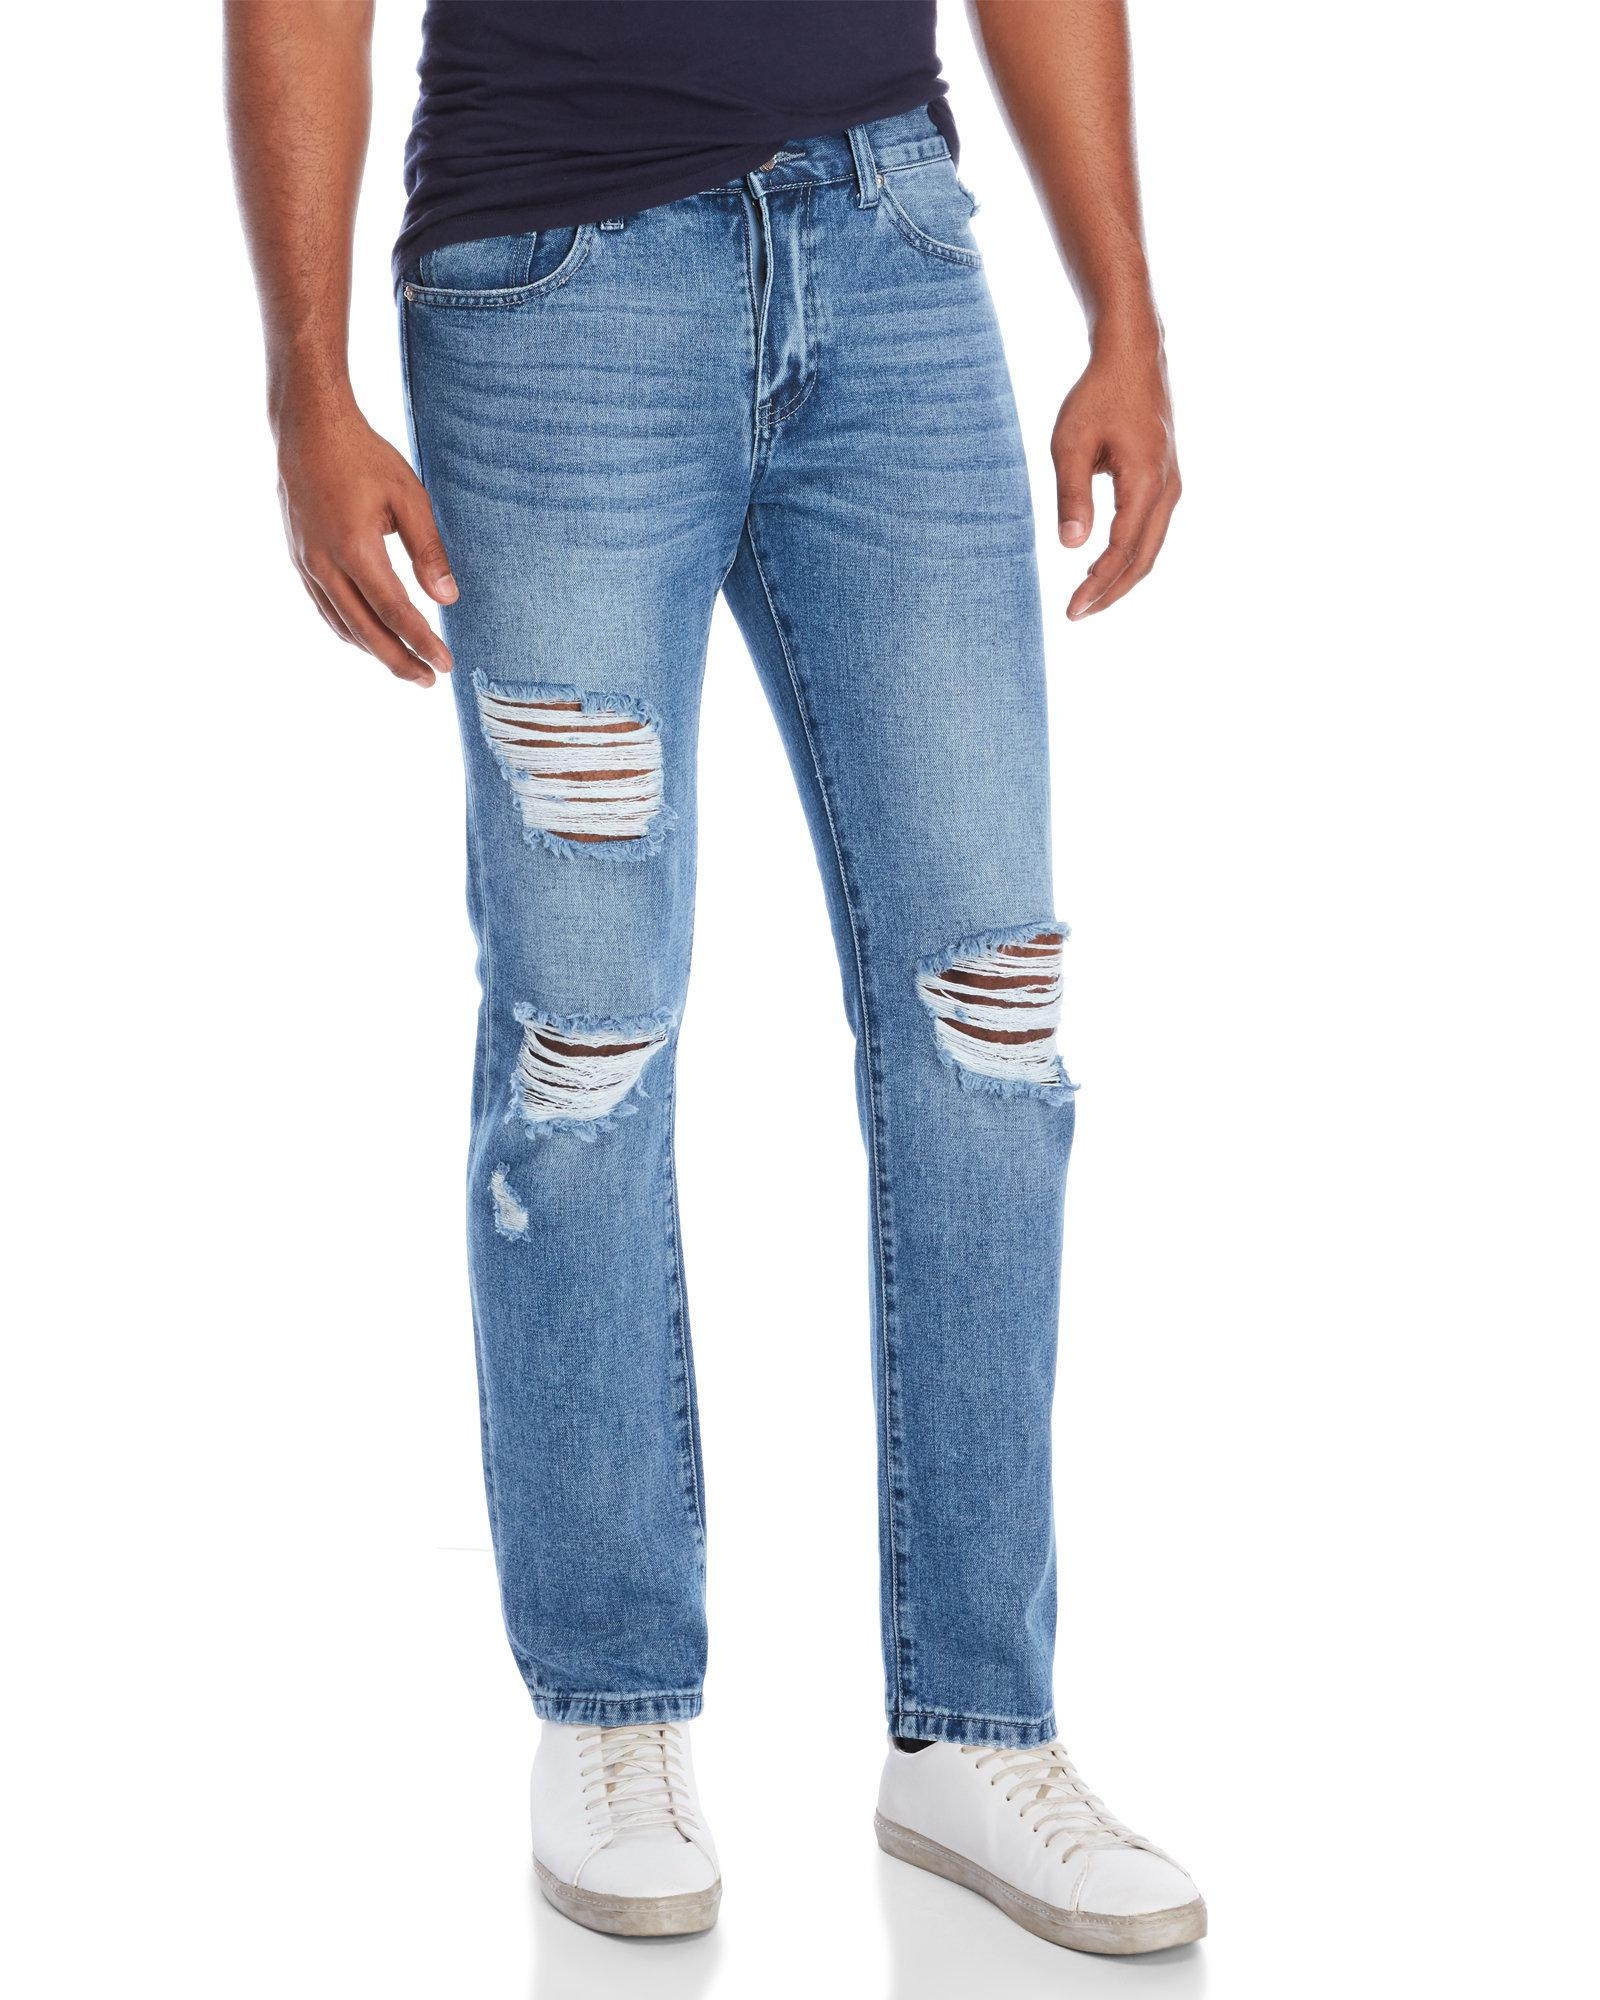 Lyst - Earnest Sewn Barclay Distressed Jeans in Blue for Men